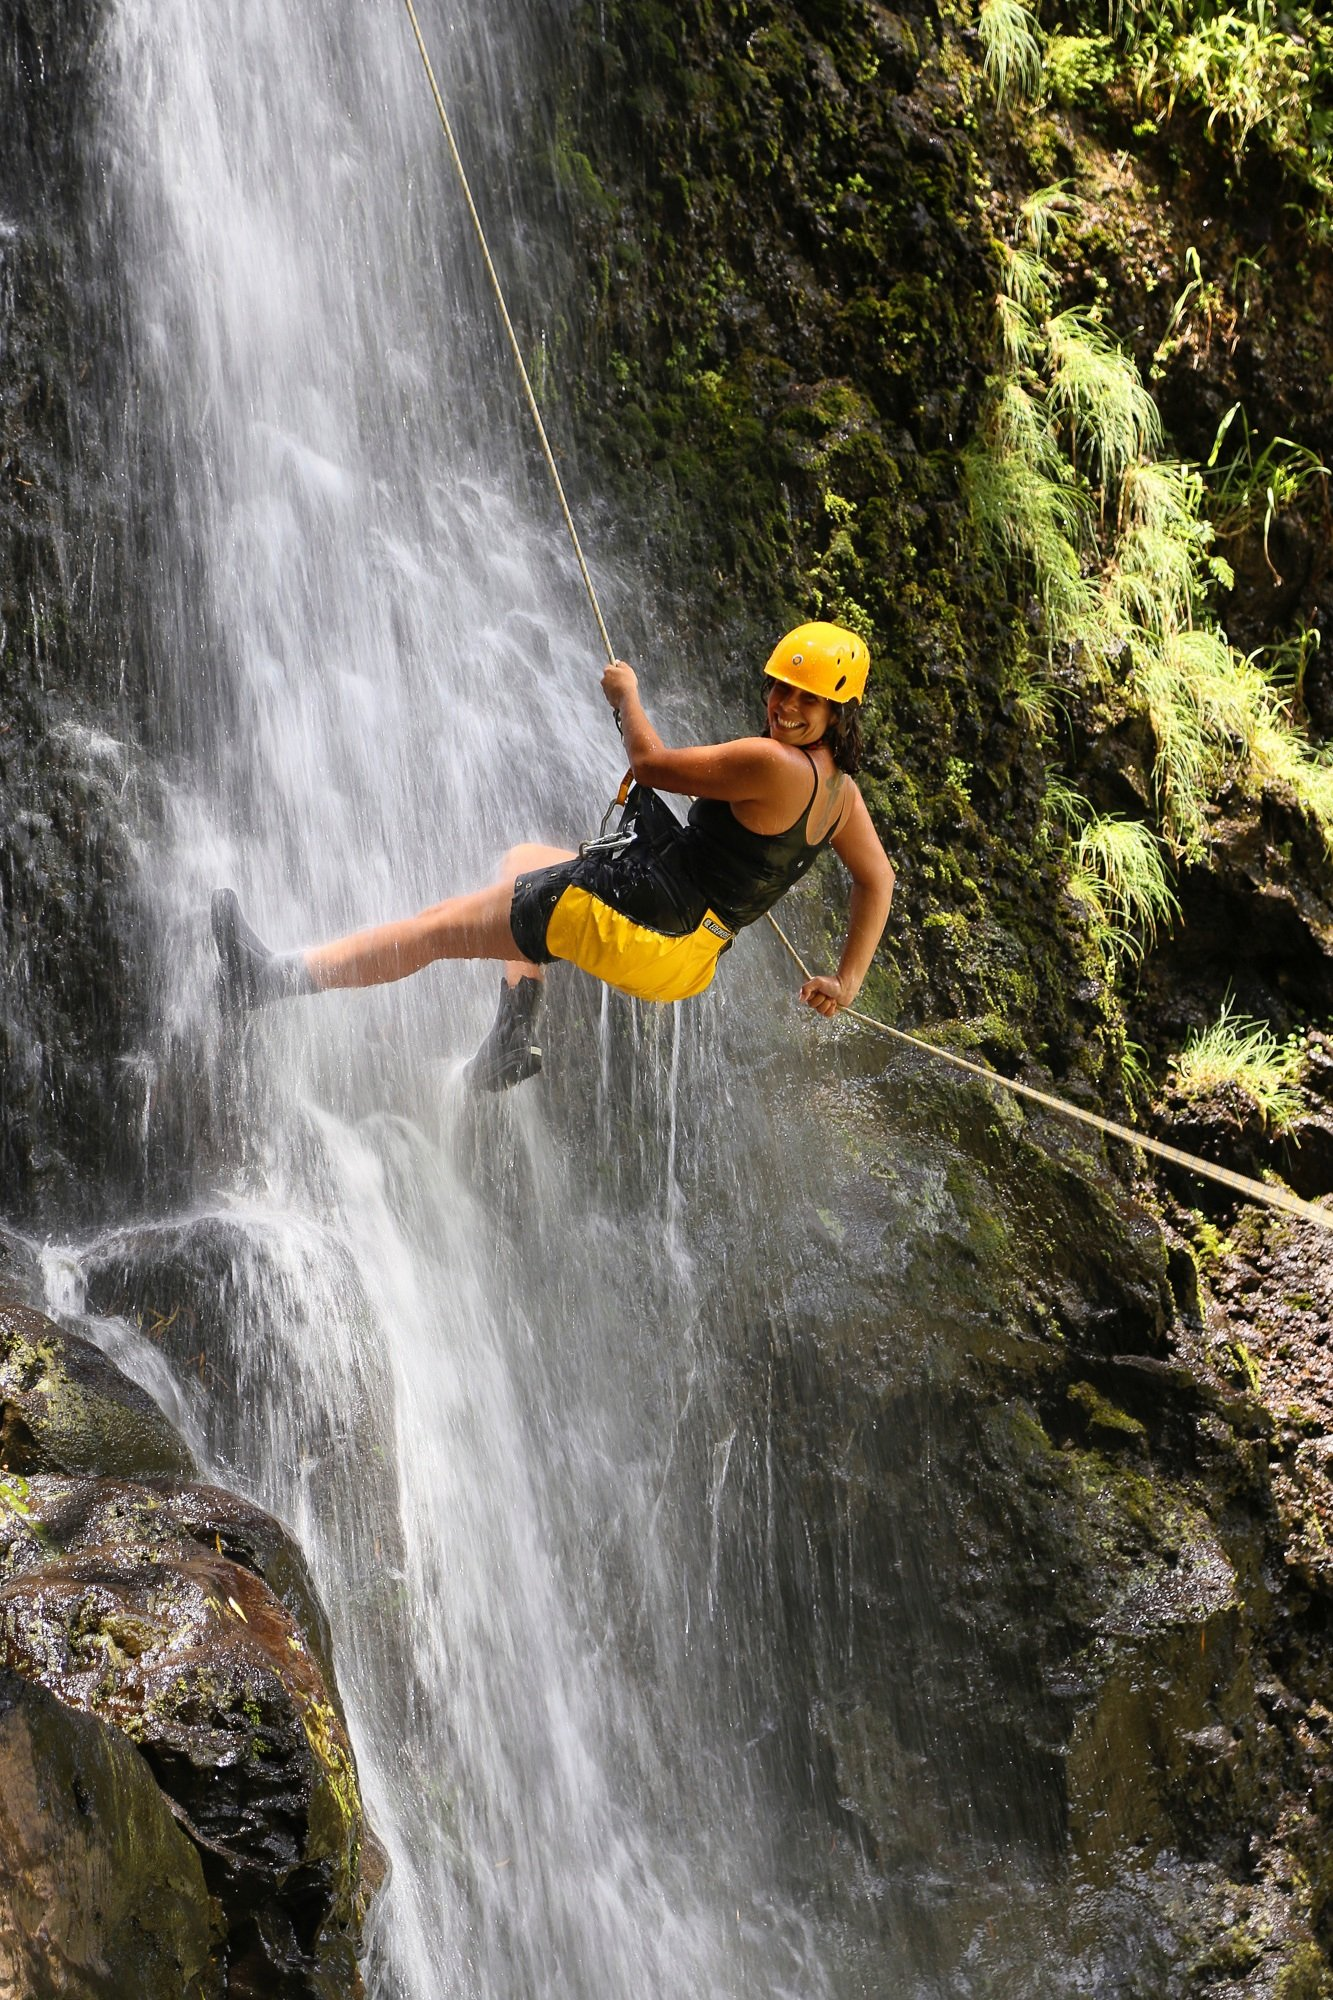 Rappeling down a waterfall in Maui